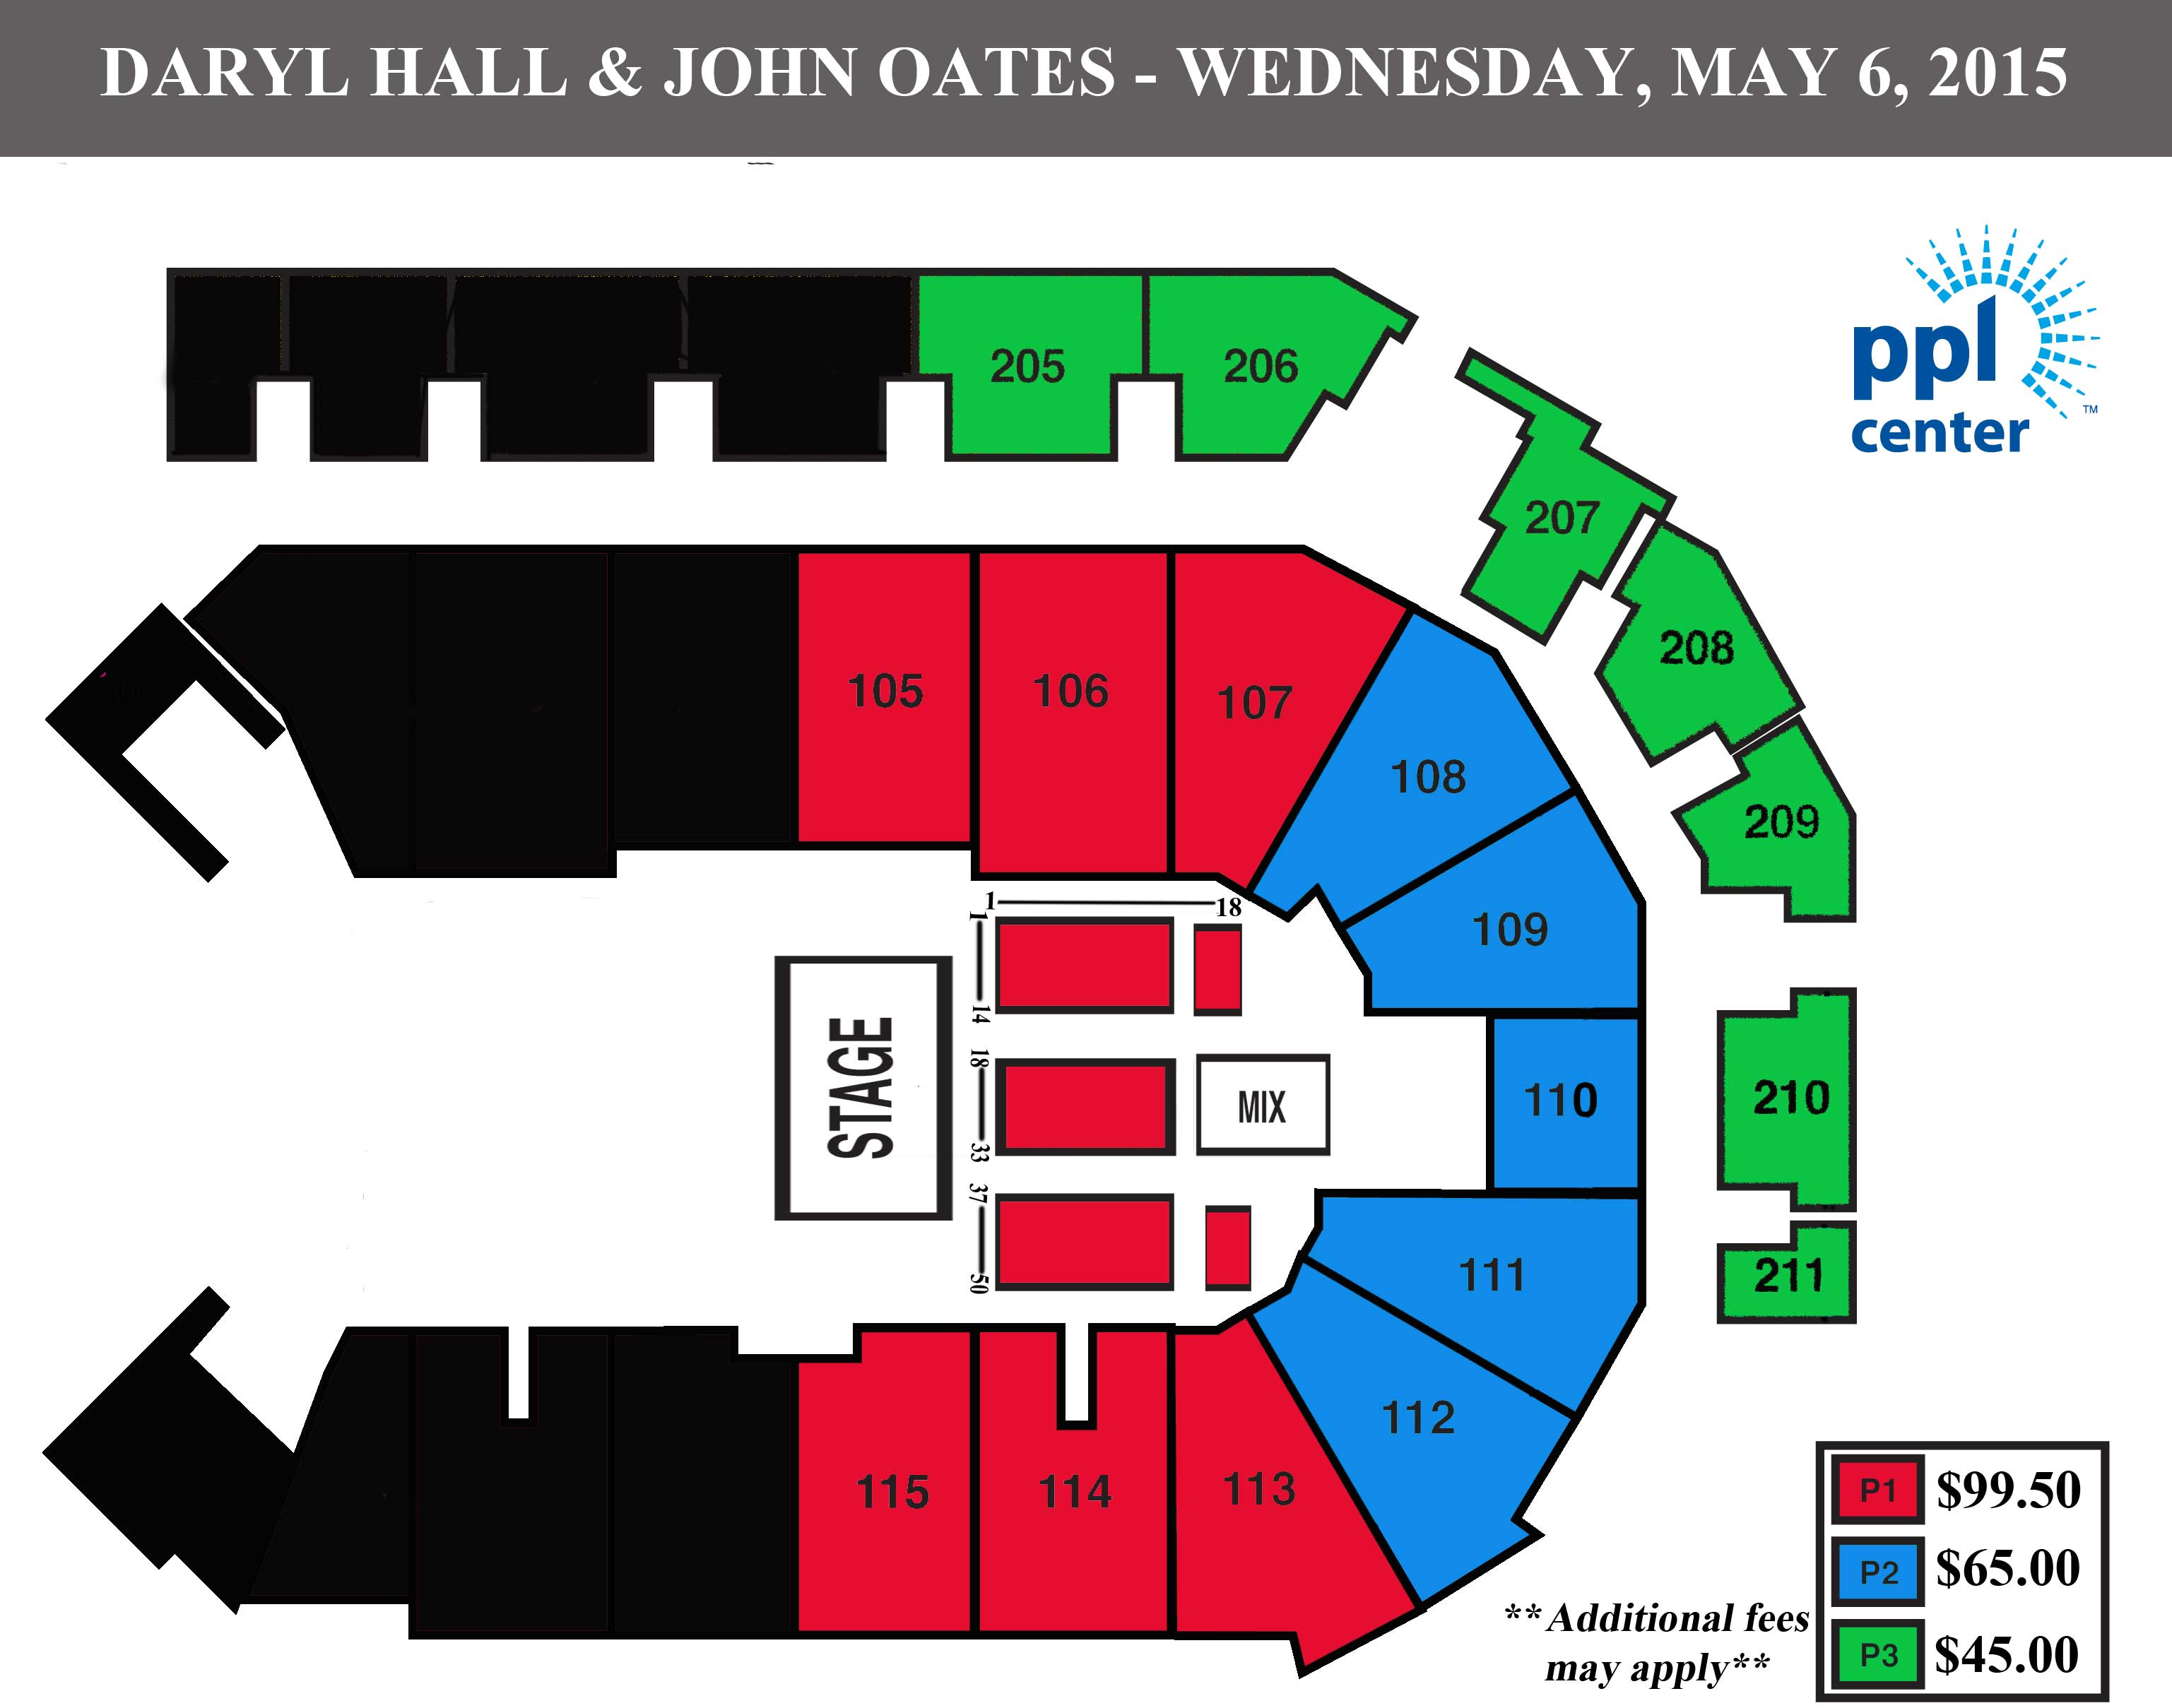 hall oates seating chart web